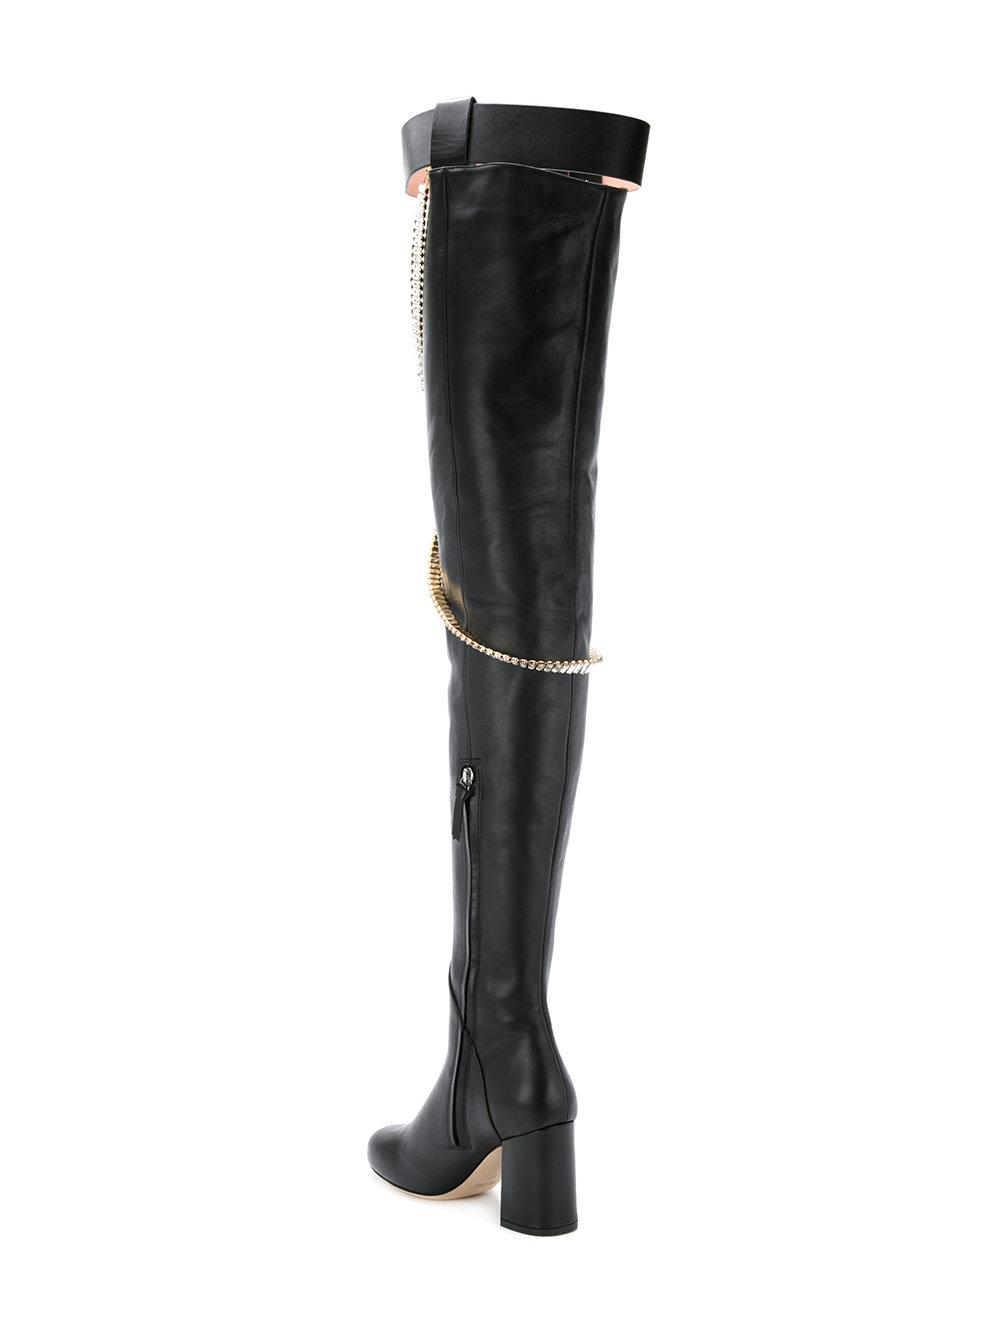 Clearance Official Site Discount 100% Original high thigh chain boots - Black Olgana Paris Buy Cheap Outlet Locations HGx3Hywvb